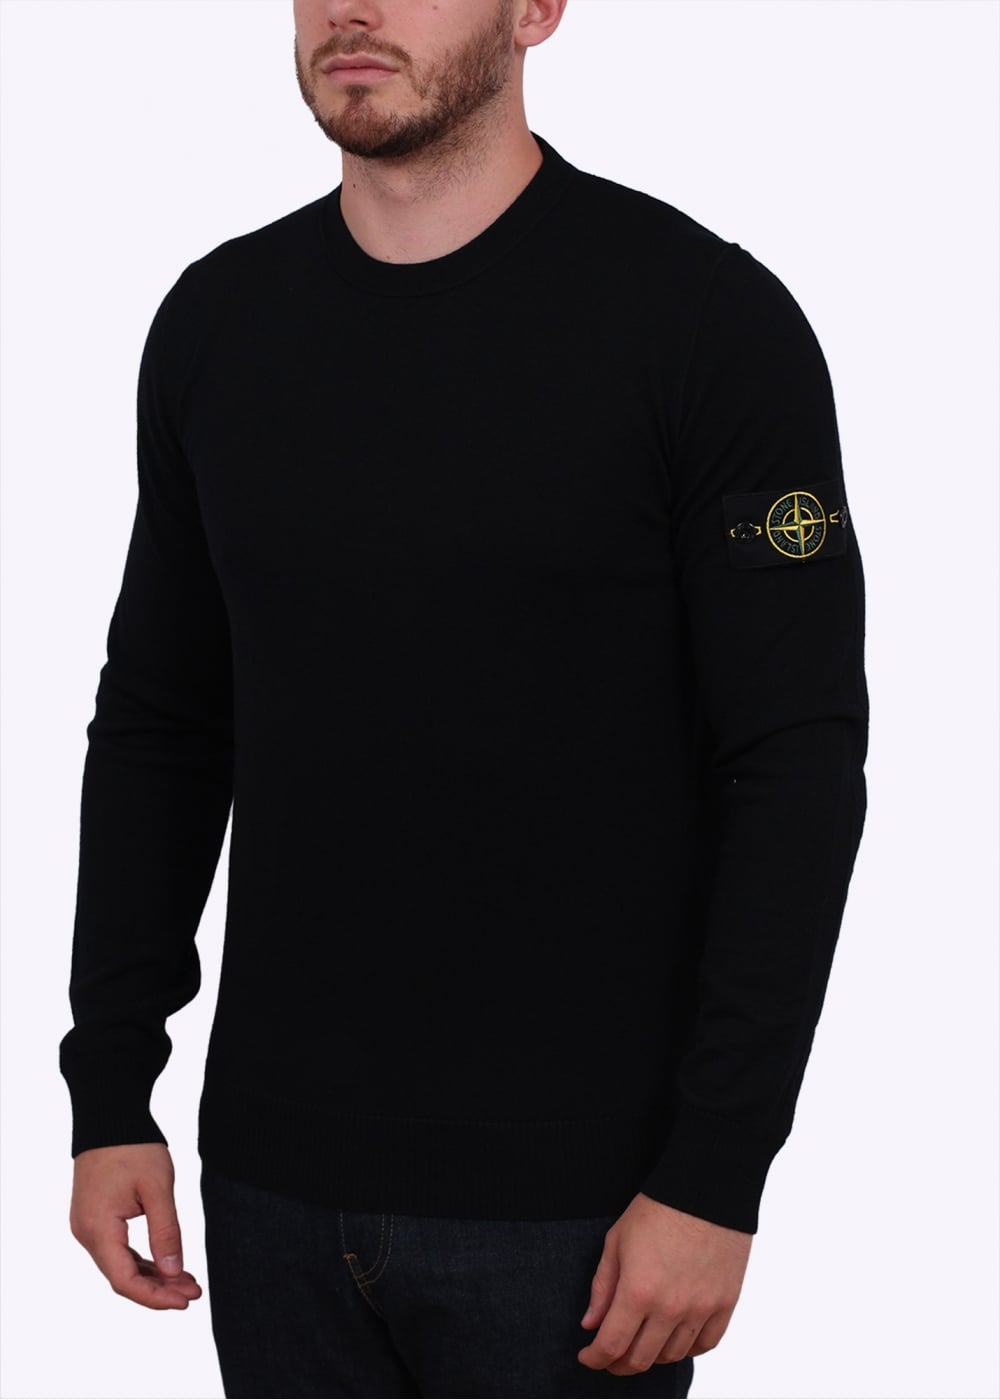 stone island thin sweater black stone island from triads uk. Black Bedroom Furniture Sets. Home Design Ideas